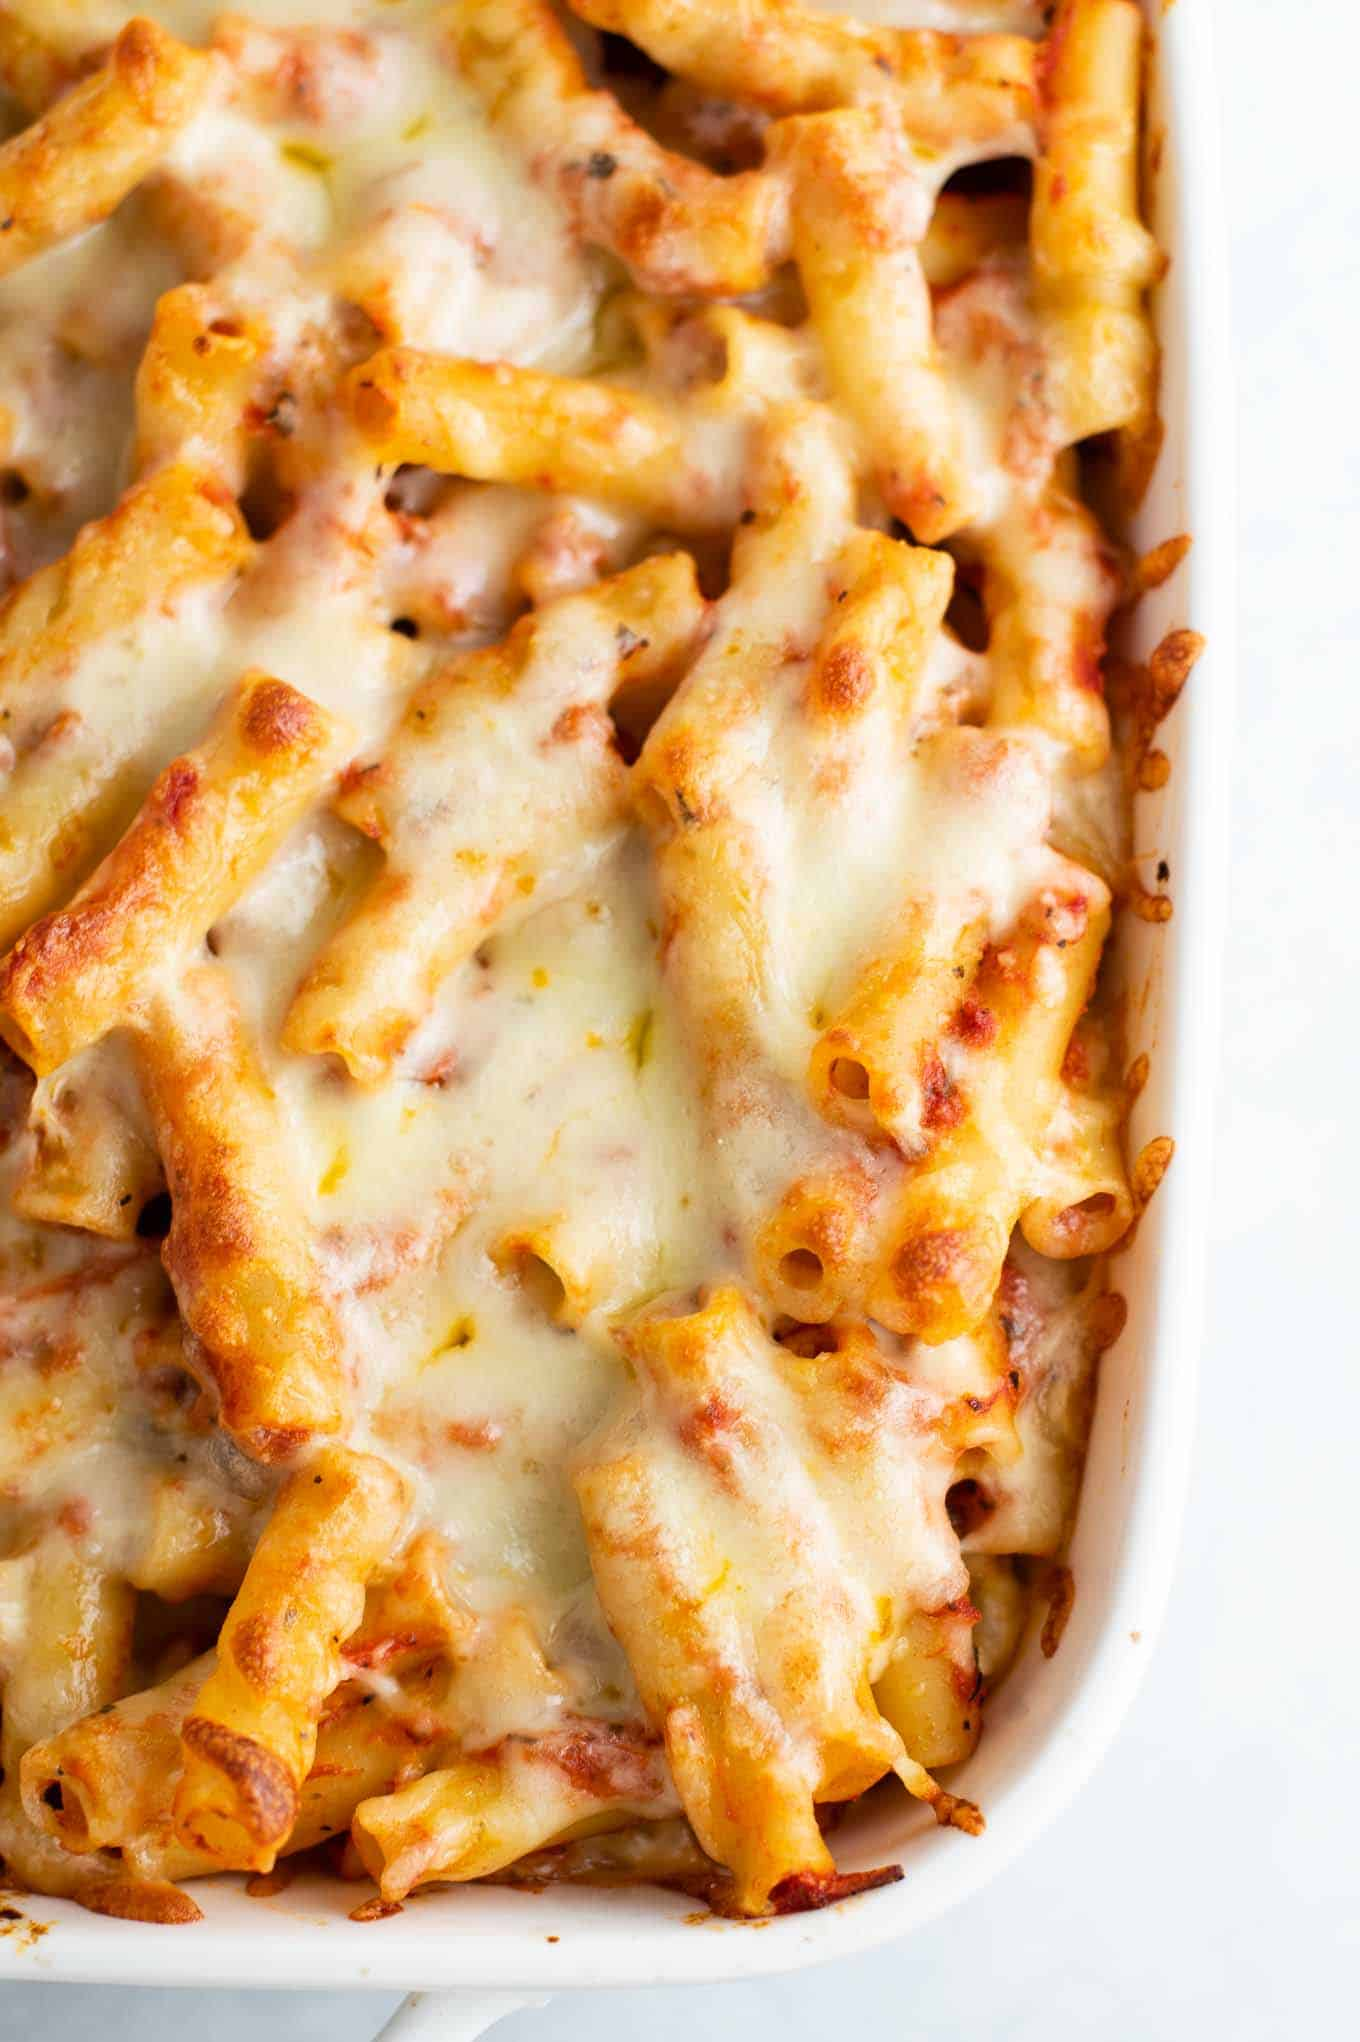 baked ziti with melted cheese on top